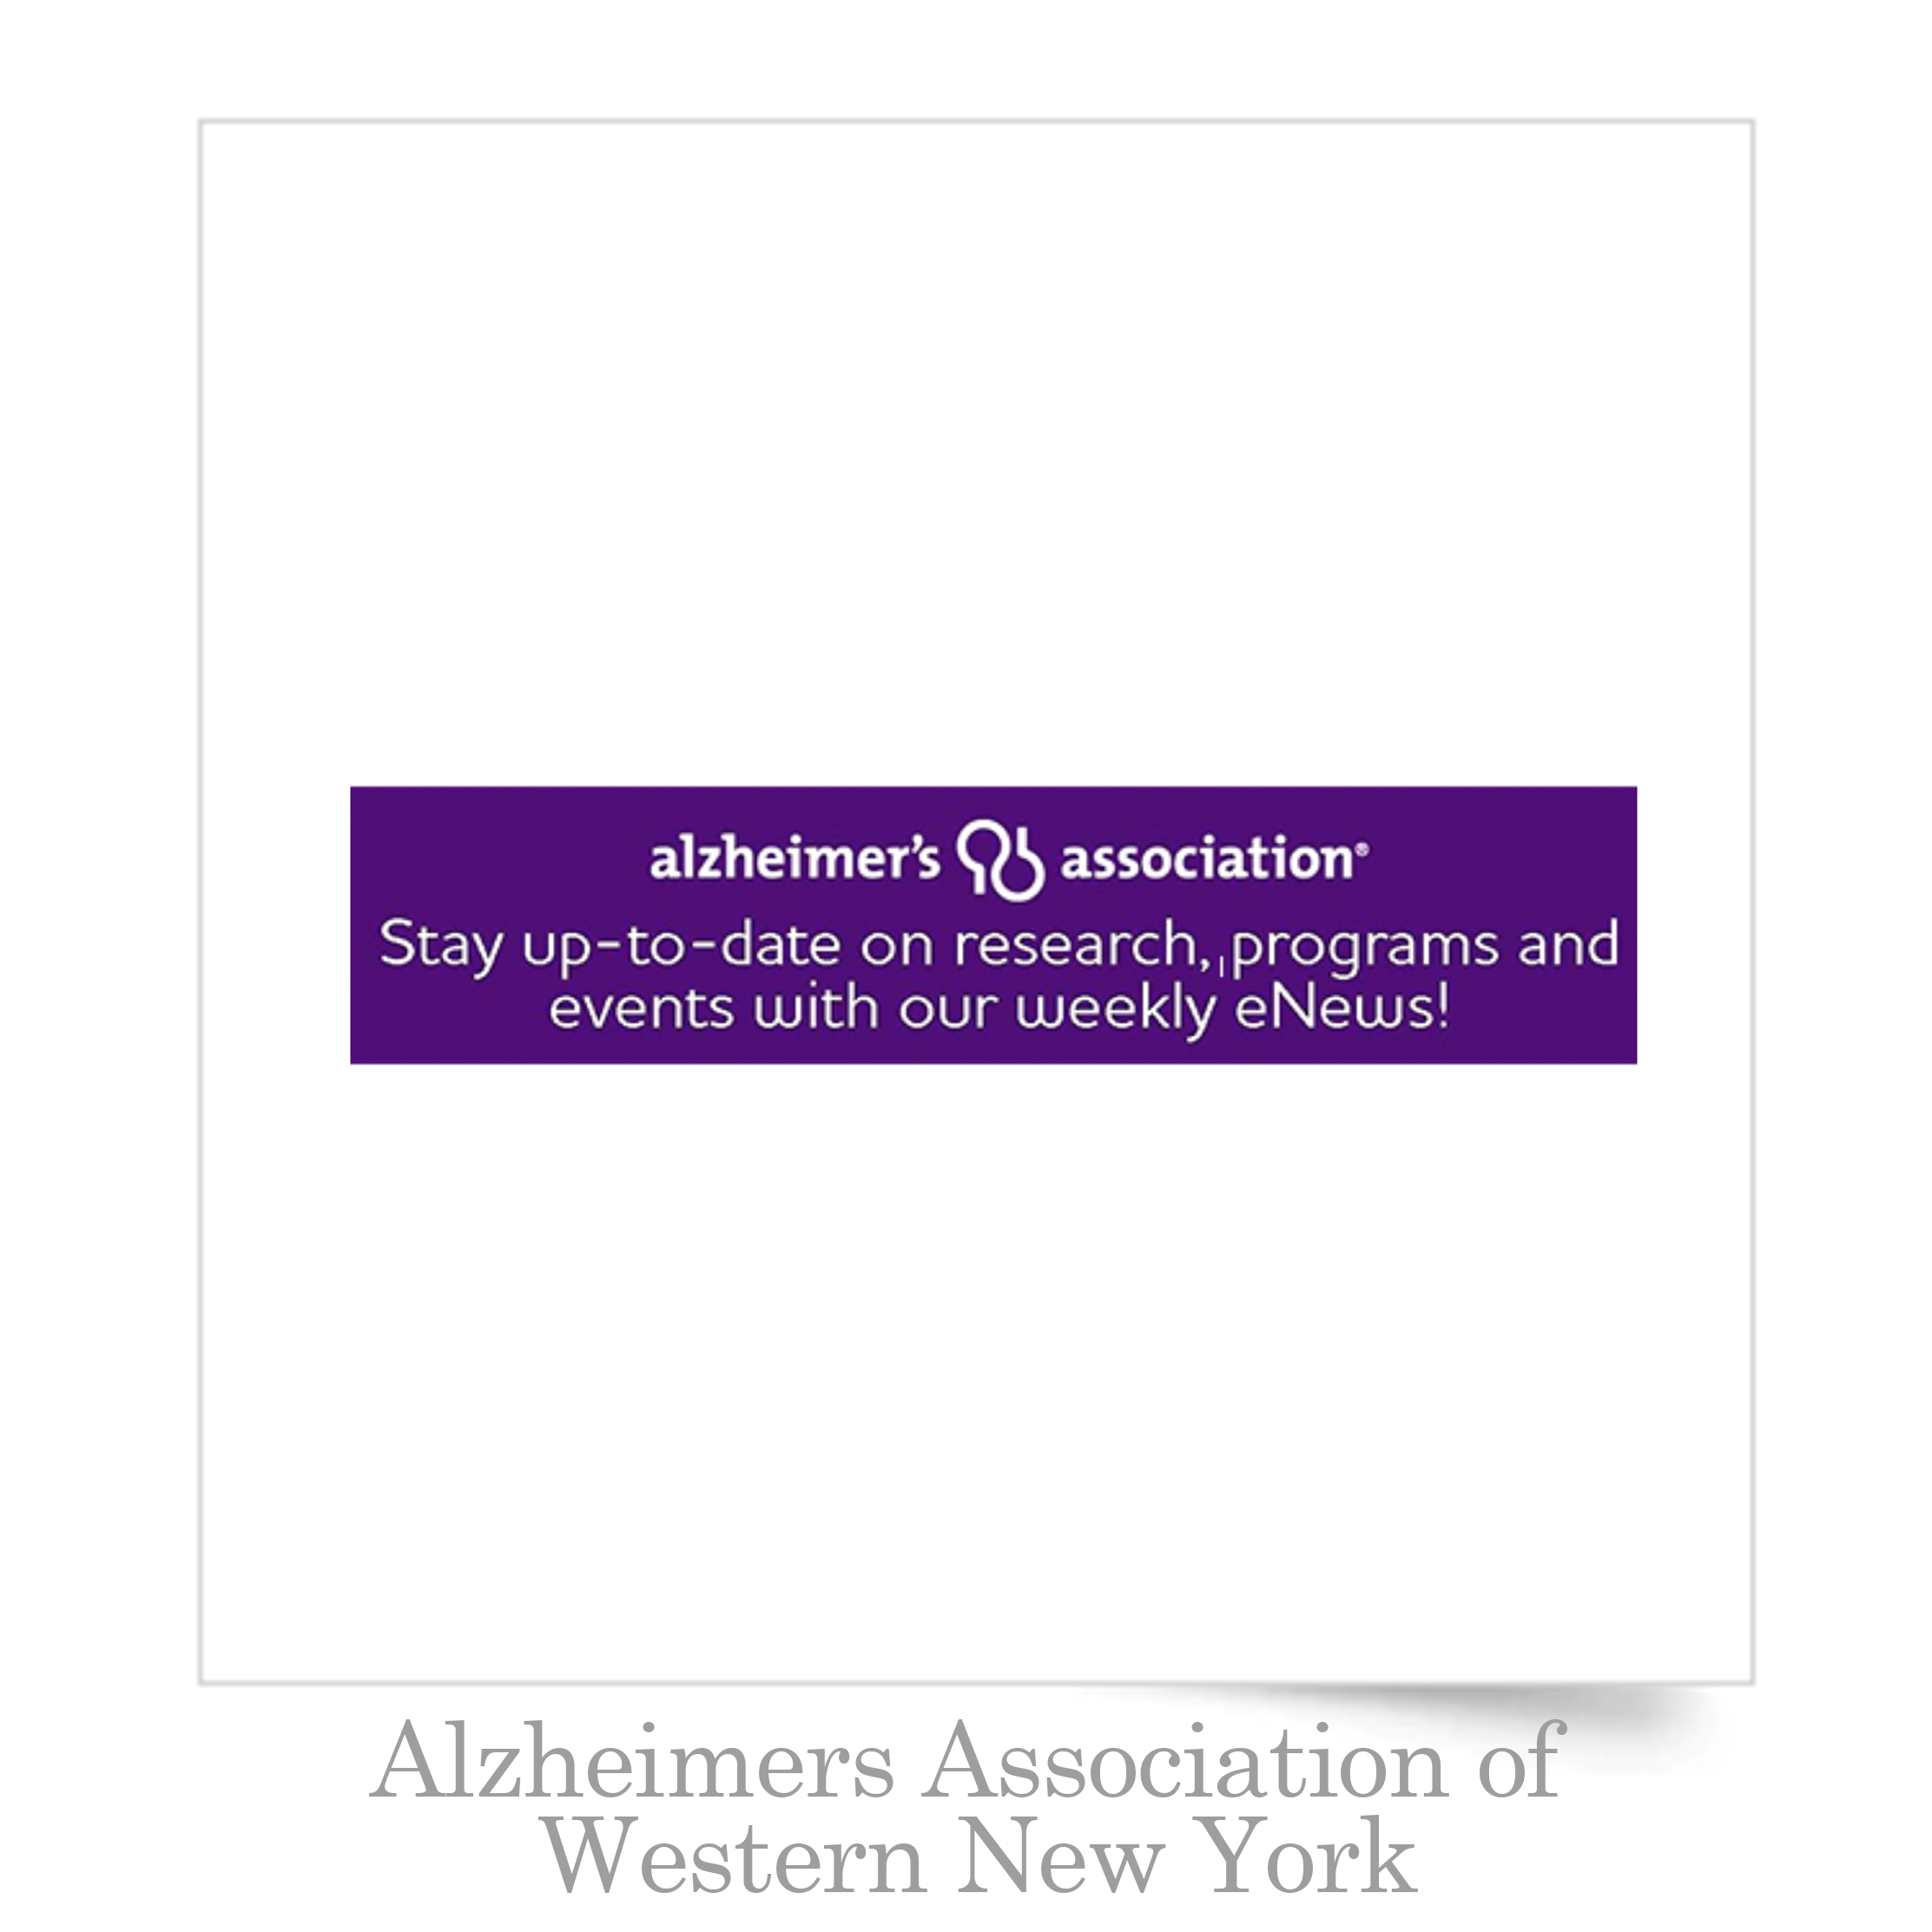 Alzheimers Association of Western Newy York